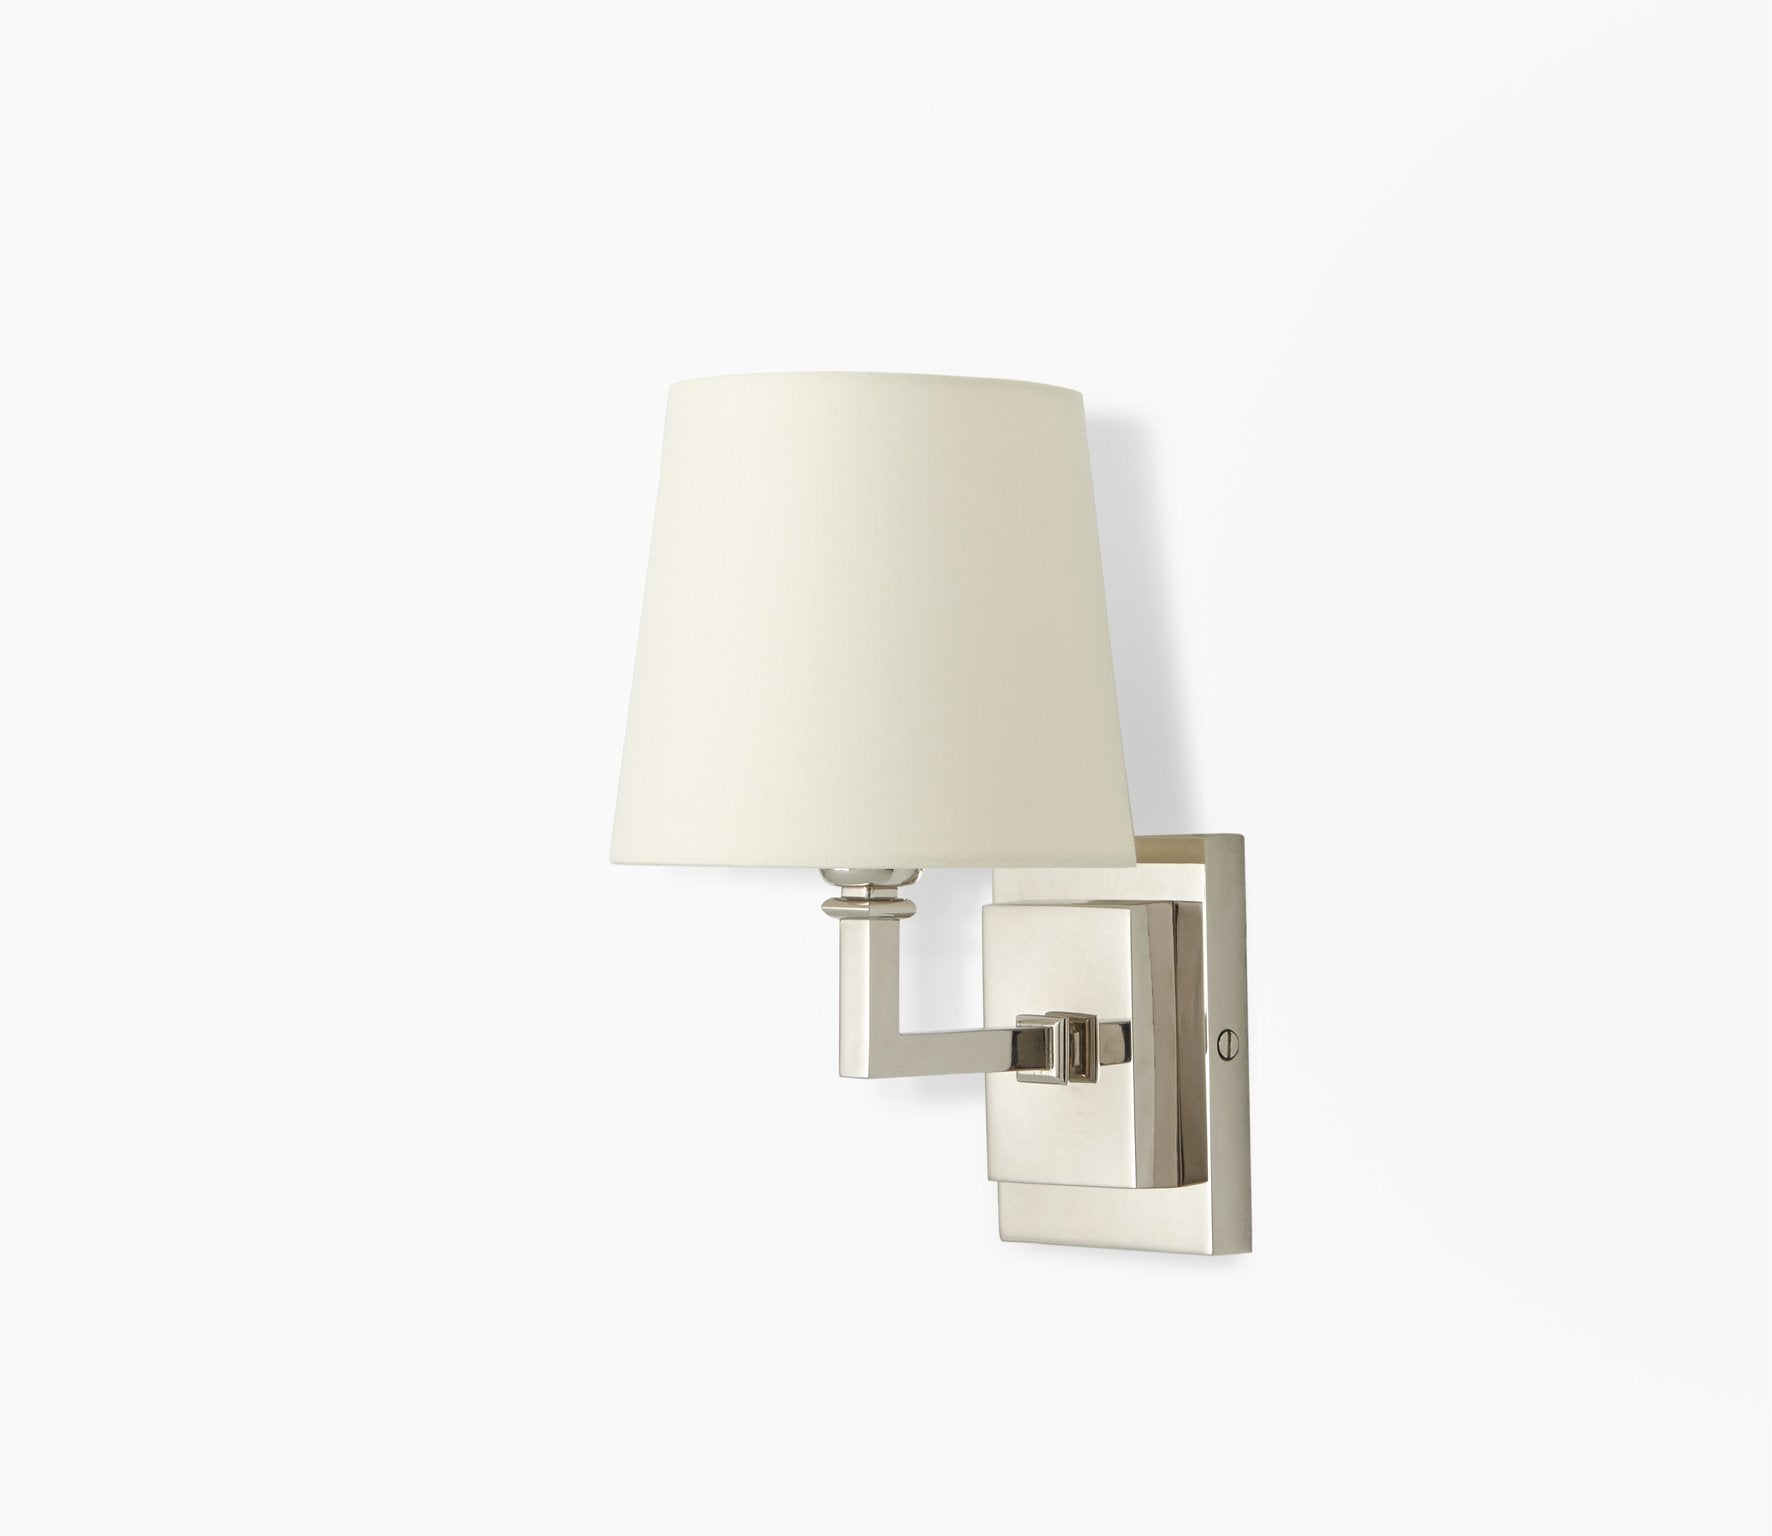 Parker Wall Light with Drum Shade Product Image 5